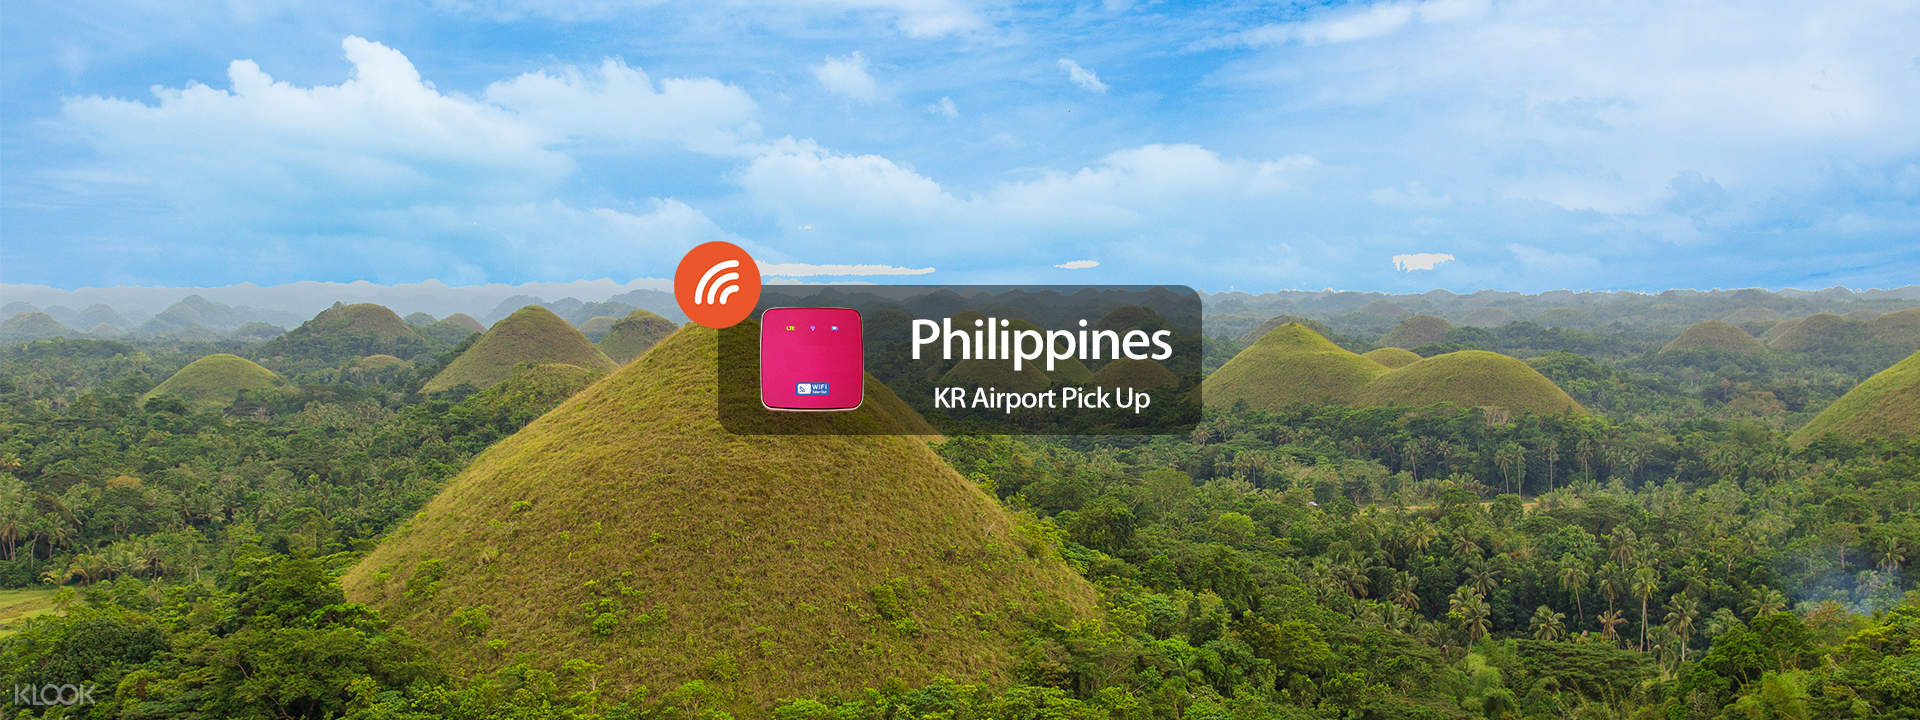 """4G WiFi (KR Airport Pick Up) for Philippines from WIDEMOBILE"""""""